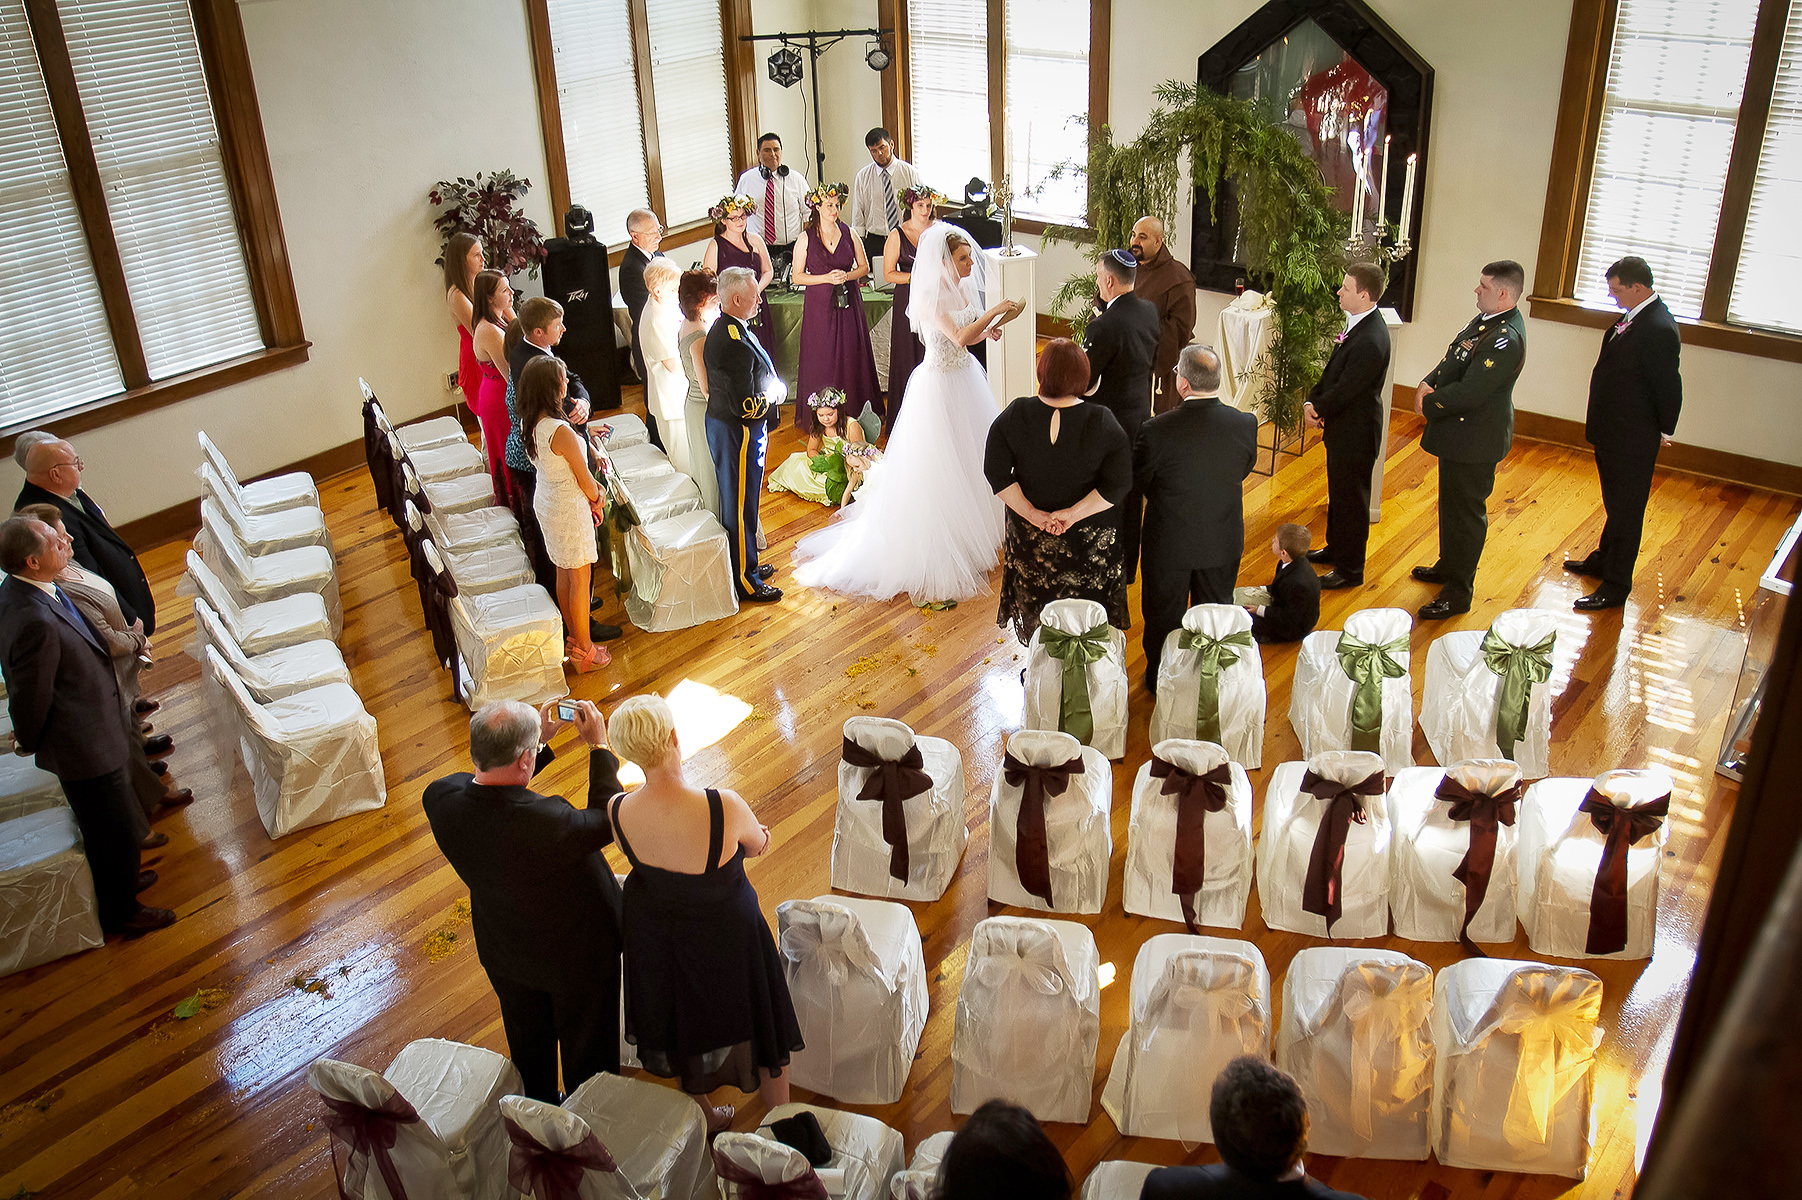 Community Center Weddings in the City of Hattiesburg | The ceremony took place in warm afternoon light that poured in through the windows